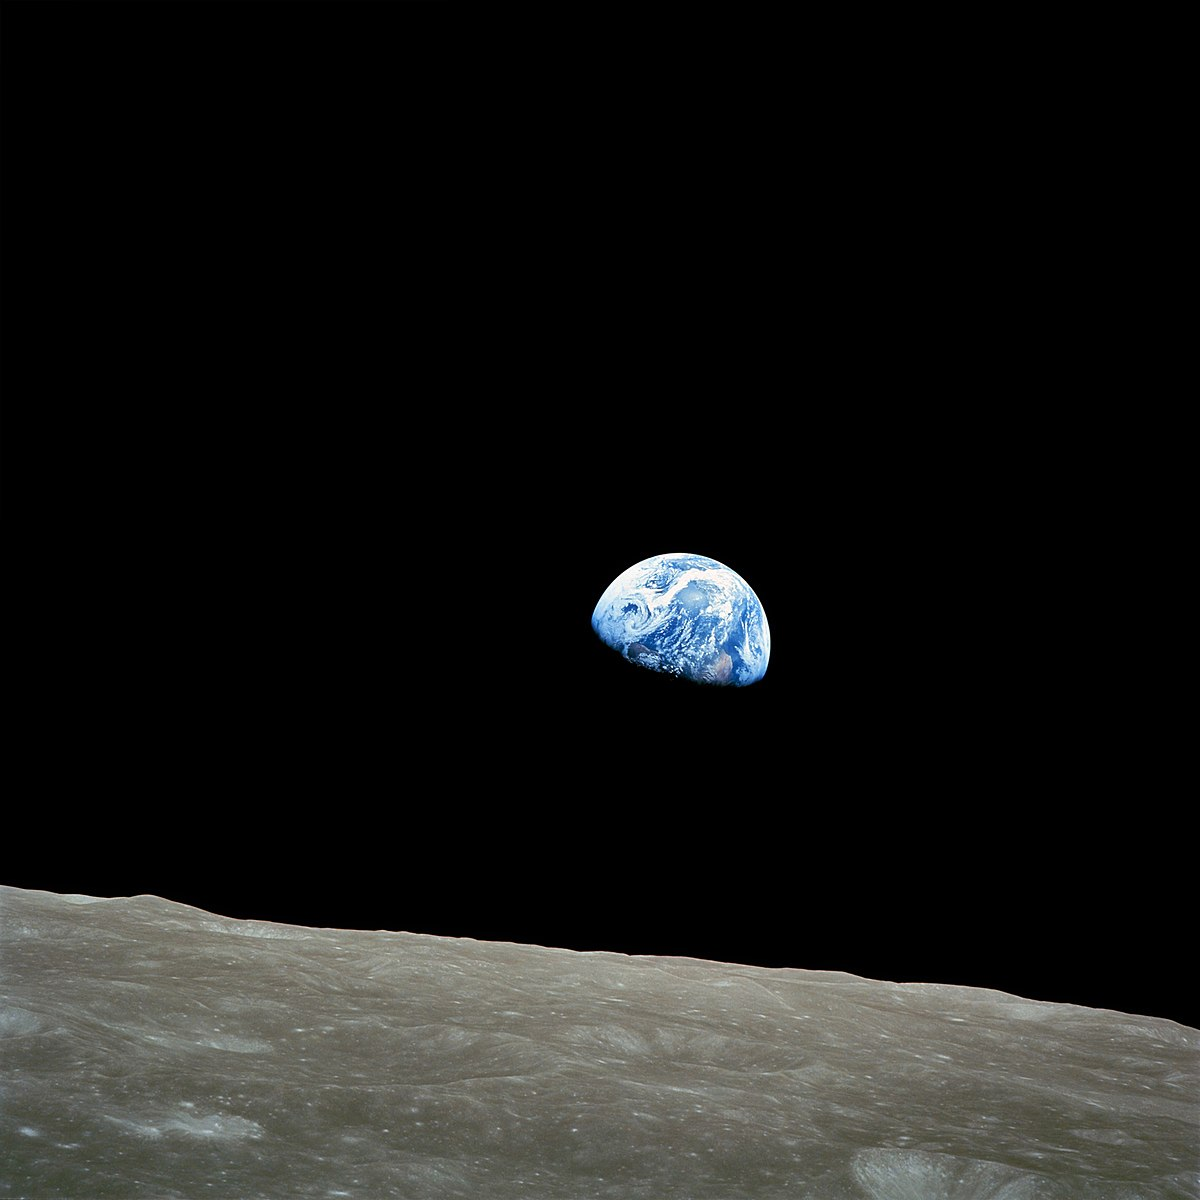 Earthrise Wikipedia